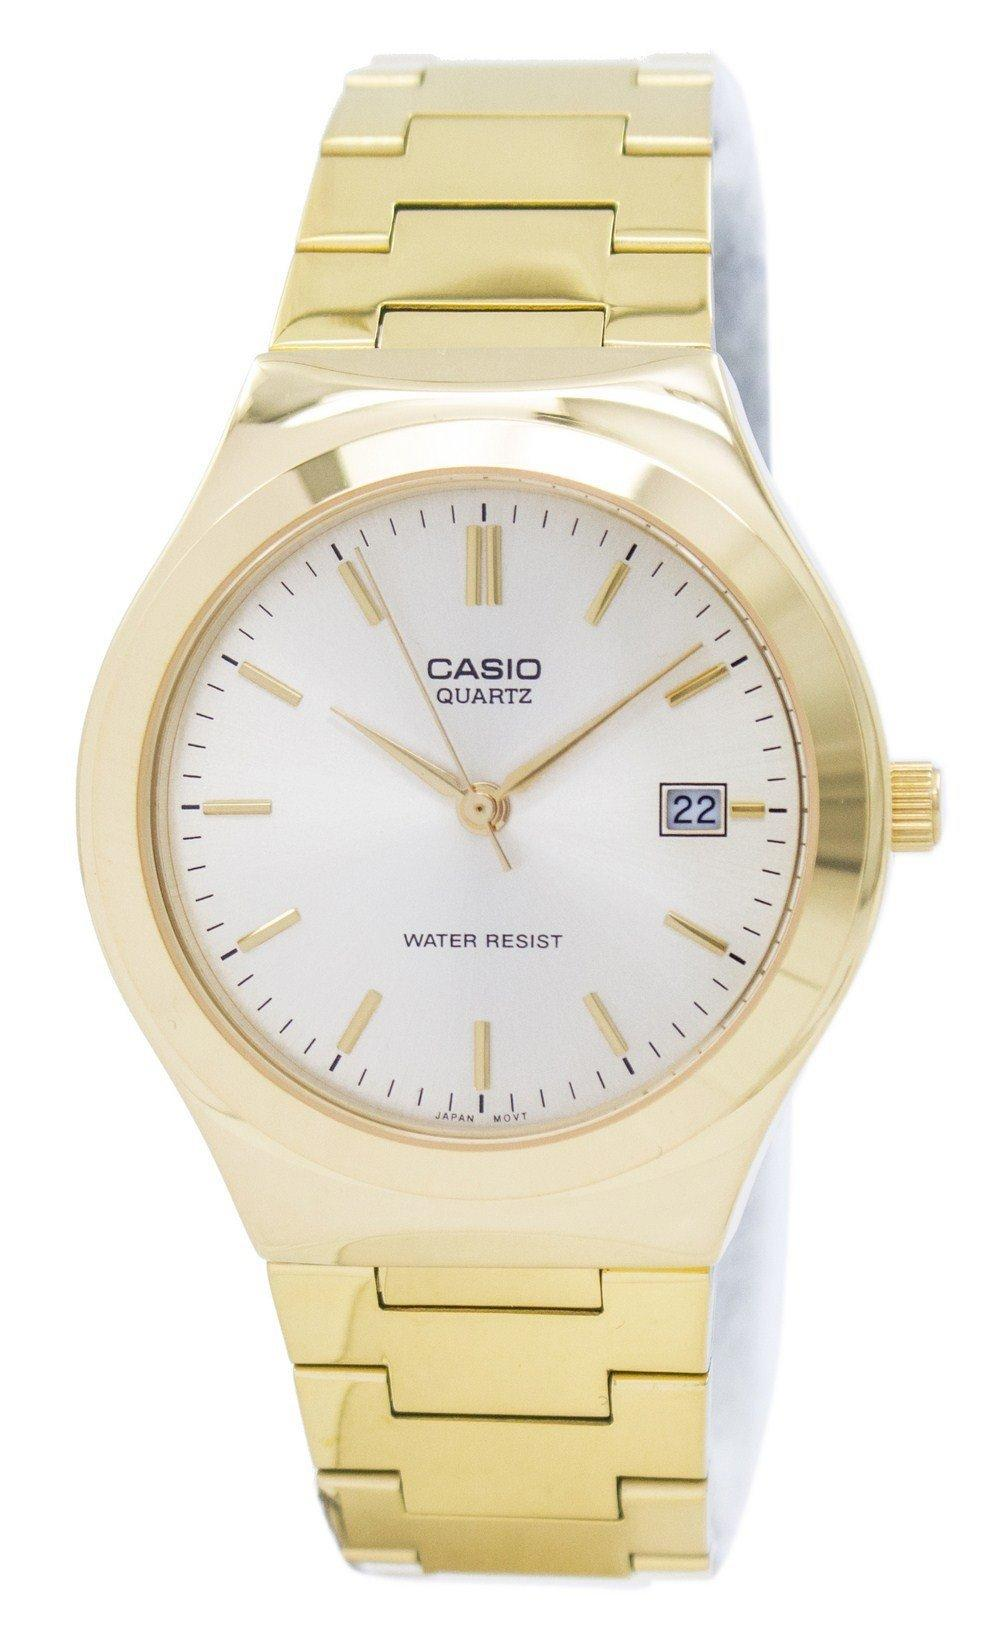 Casio Quartz Analog Gold Tone Dial MTP-1170N-9ARDF MTP1170N-9ARDF Men's Watch